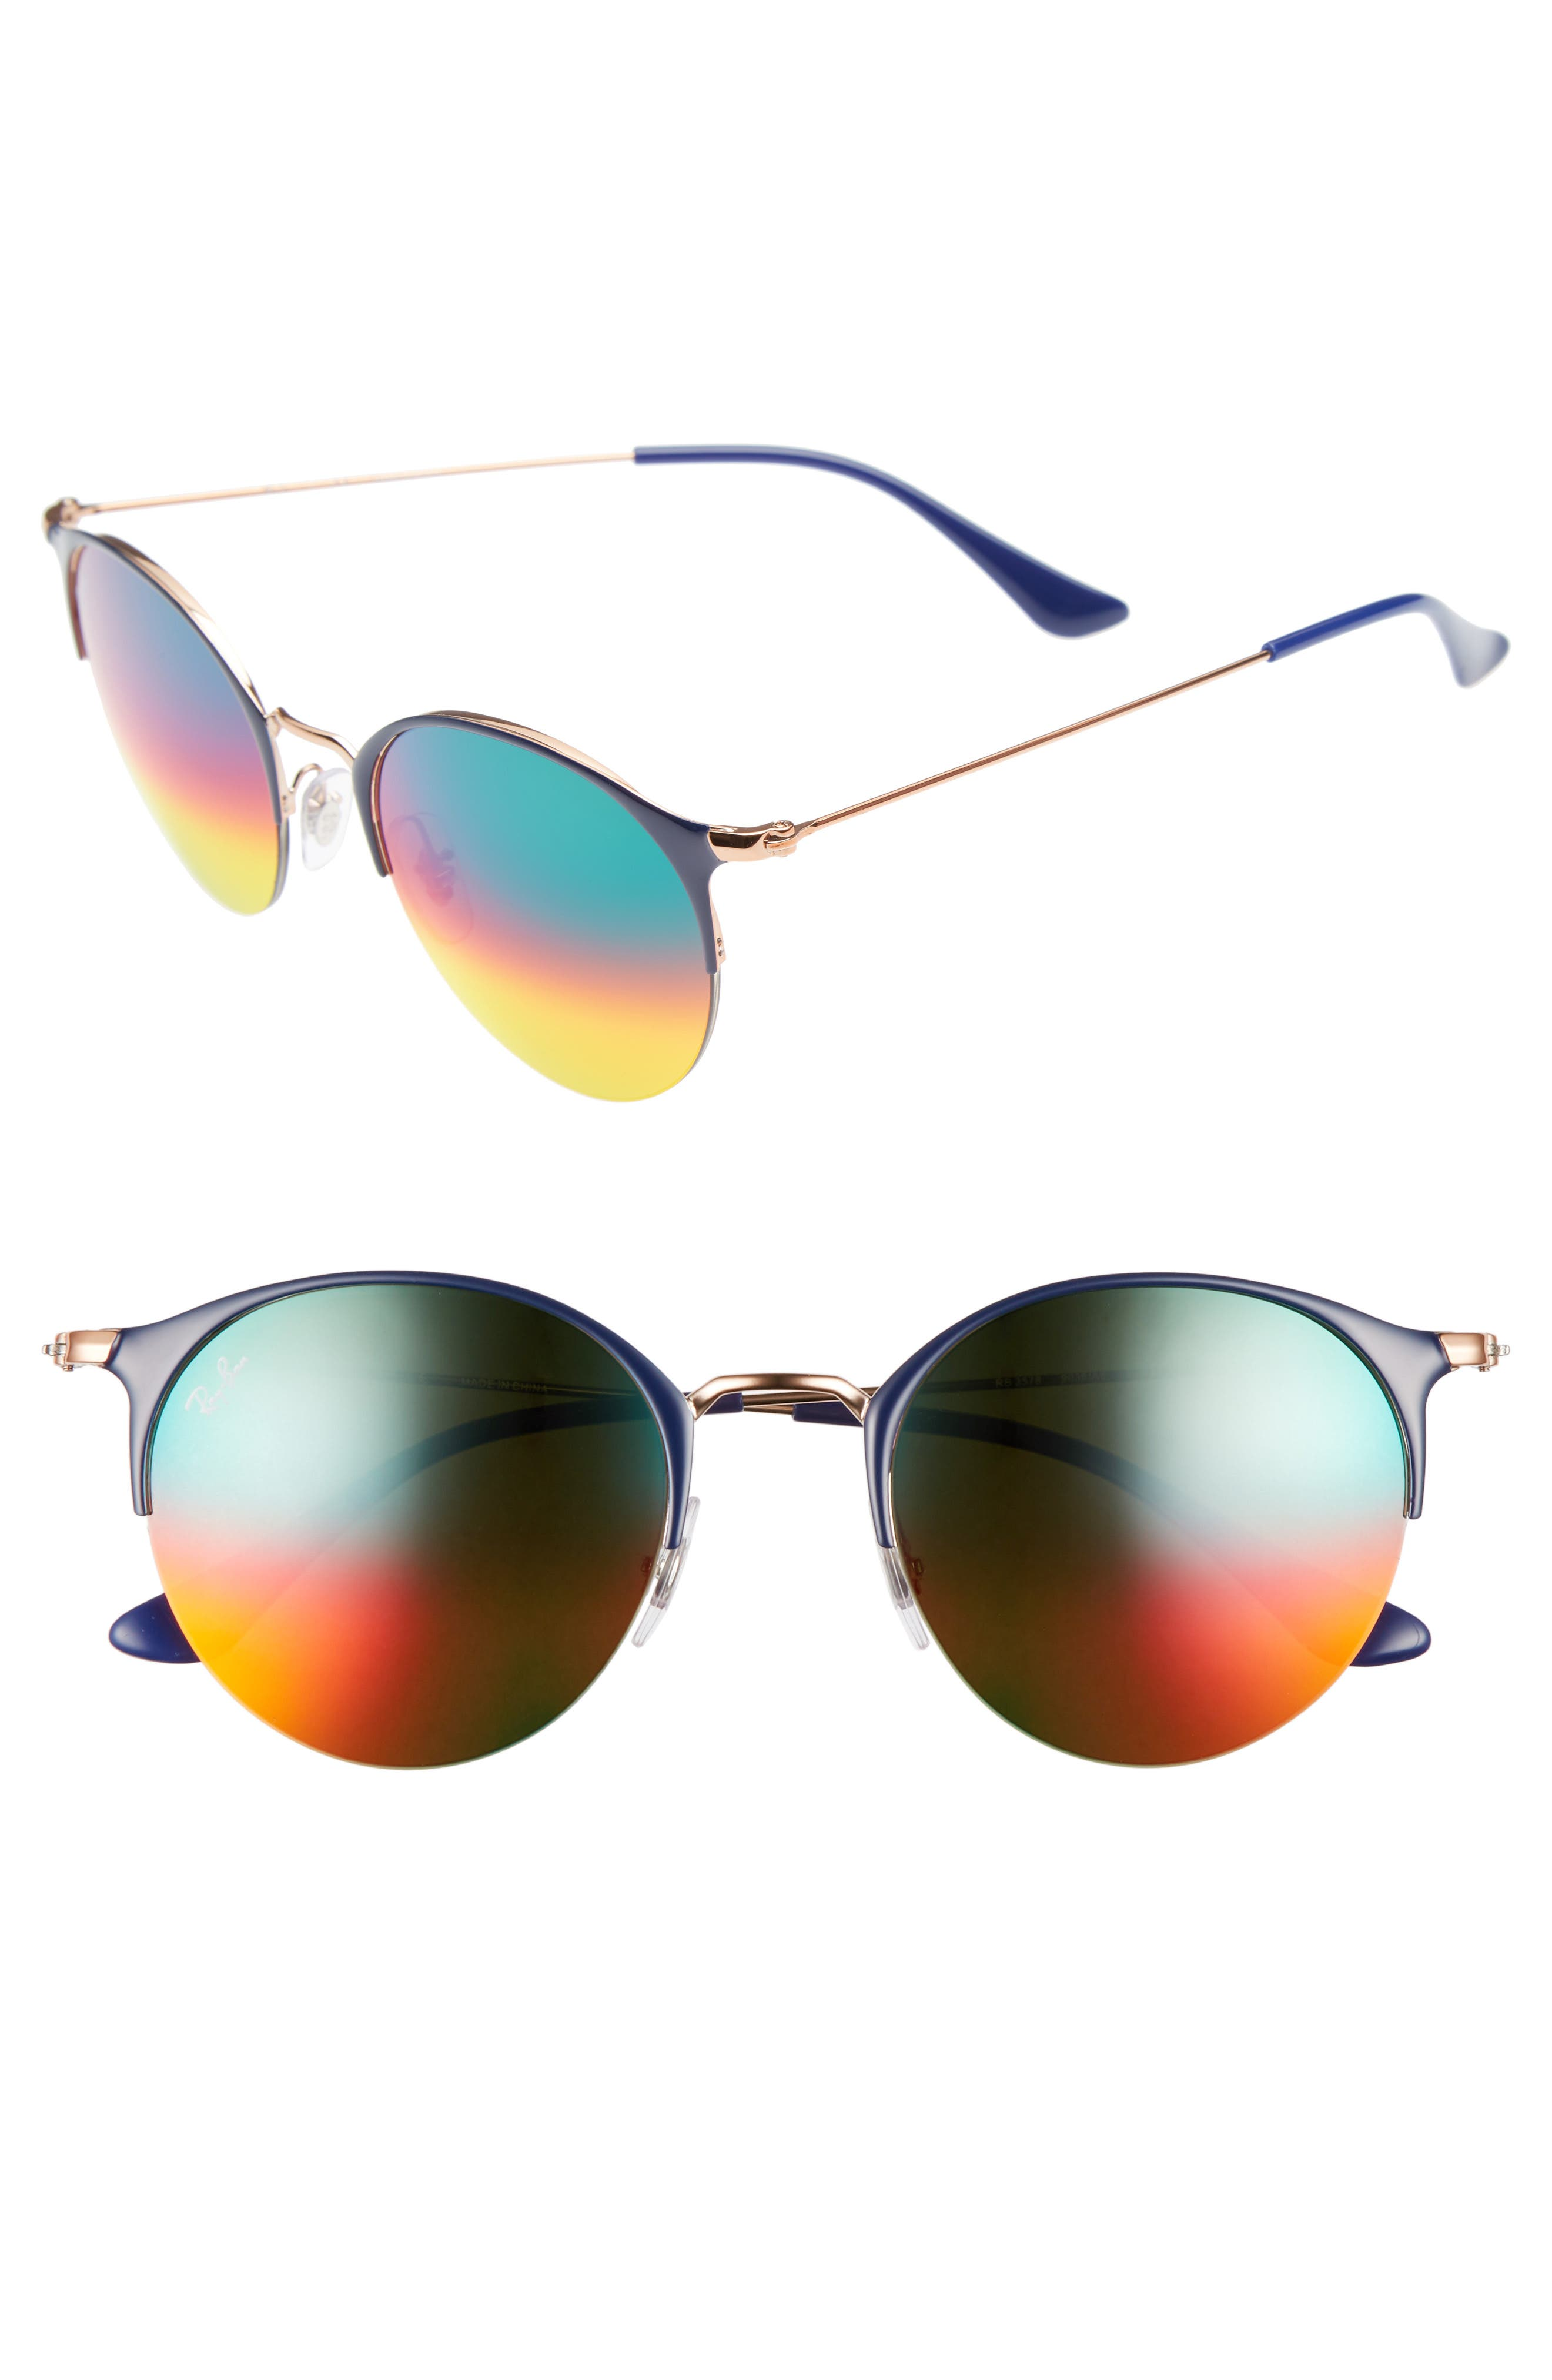 50mm Round Sunglasses,                             Main thumbnail 1, color,                             GOLD BLUE/ BROWN MIRROR